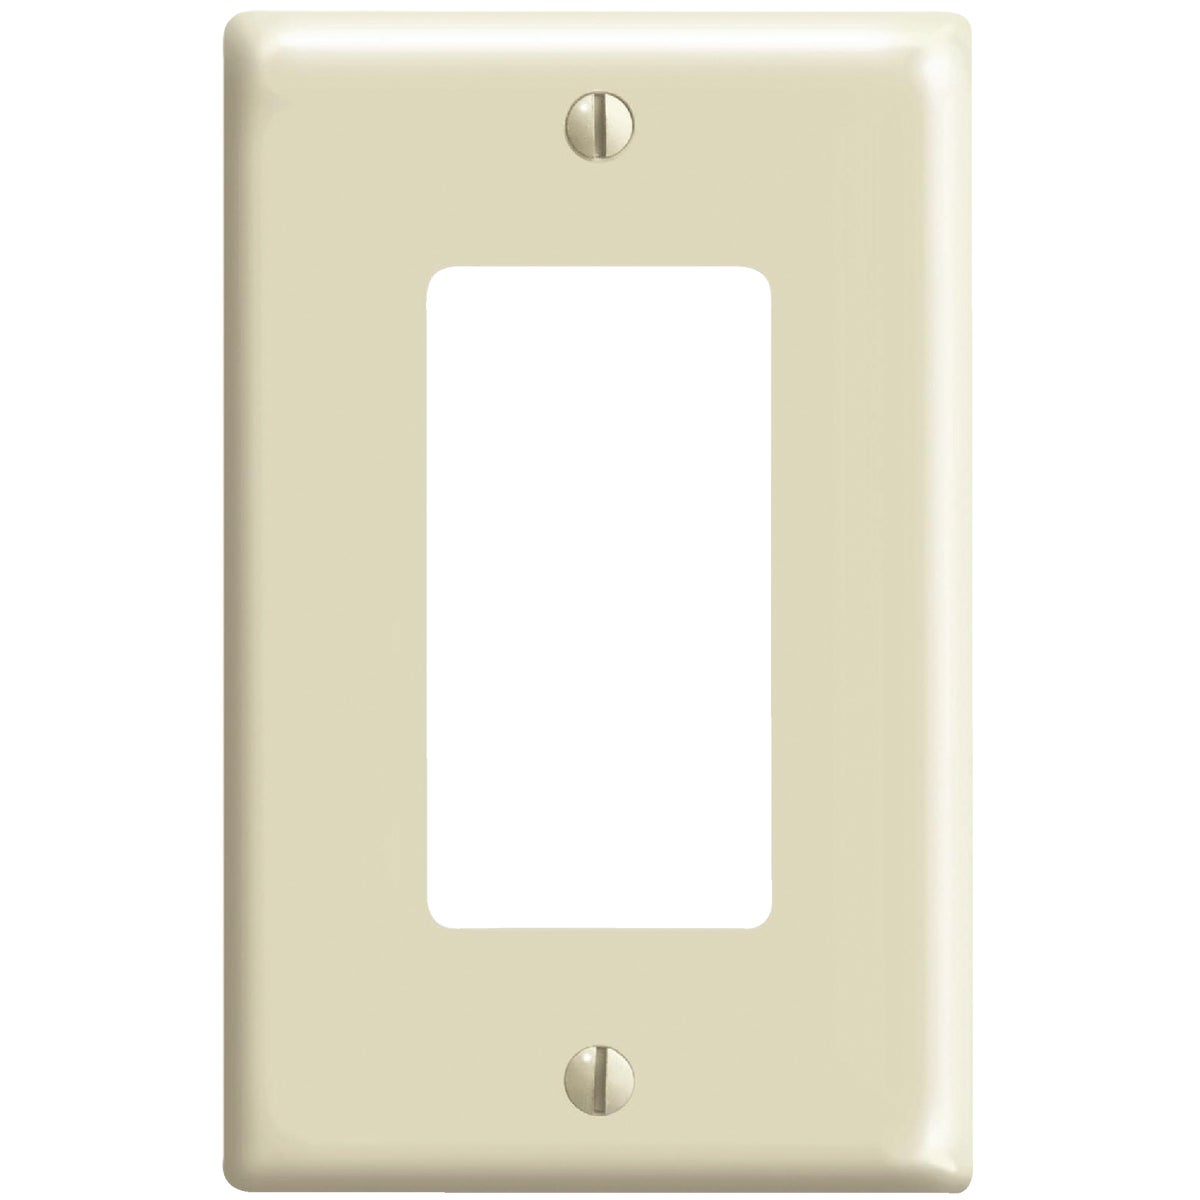 IV ROCKER WALL PLATE - 020-80601I by Leviton Mfg Co